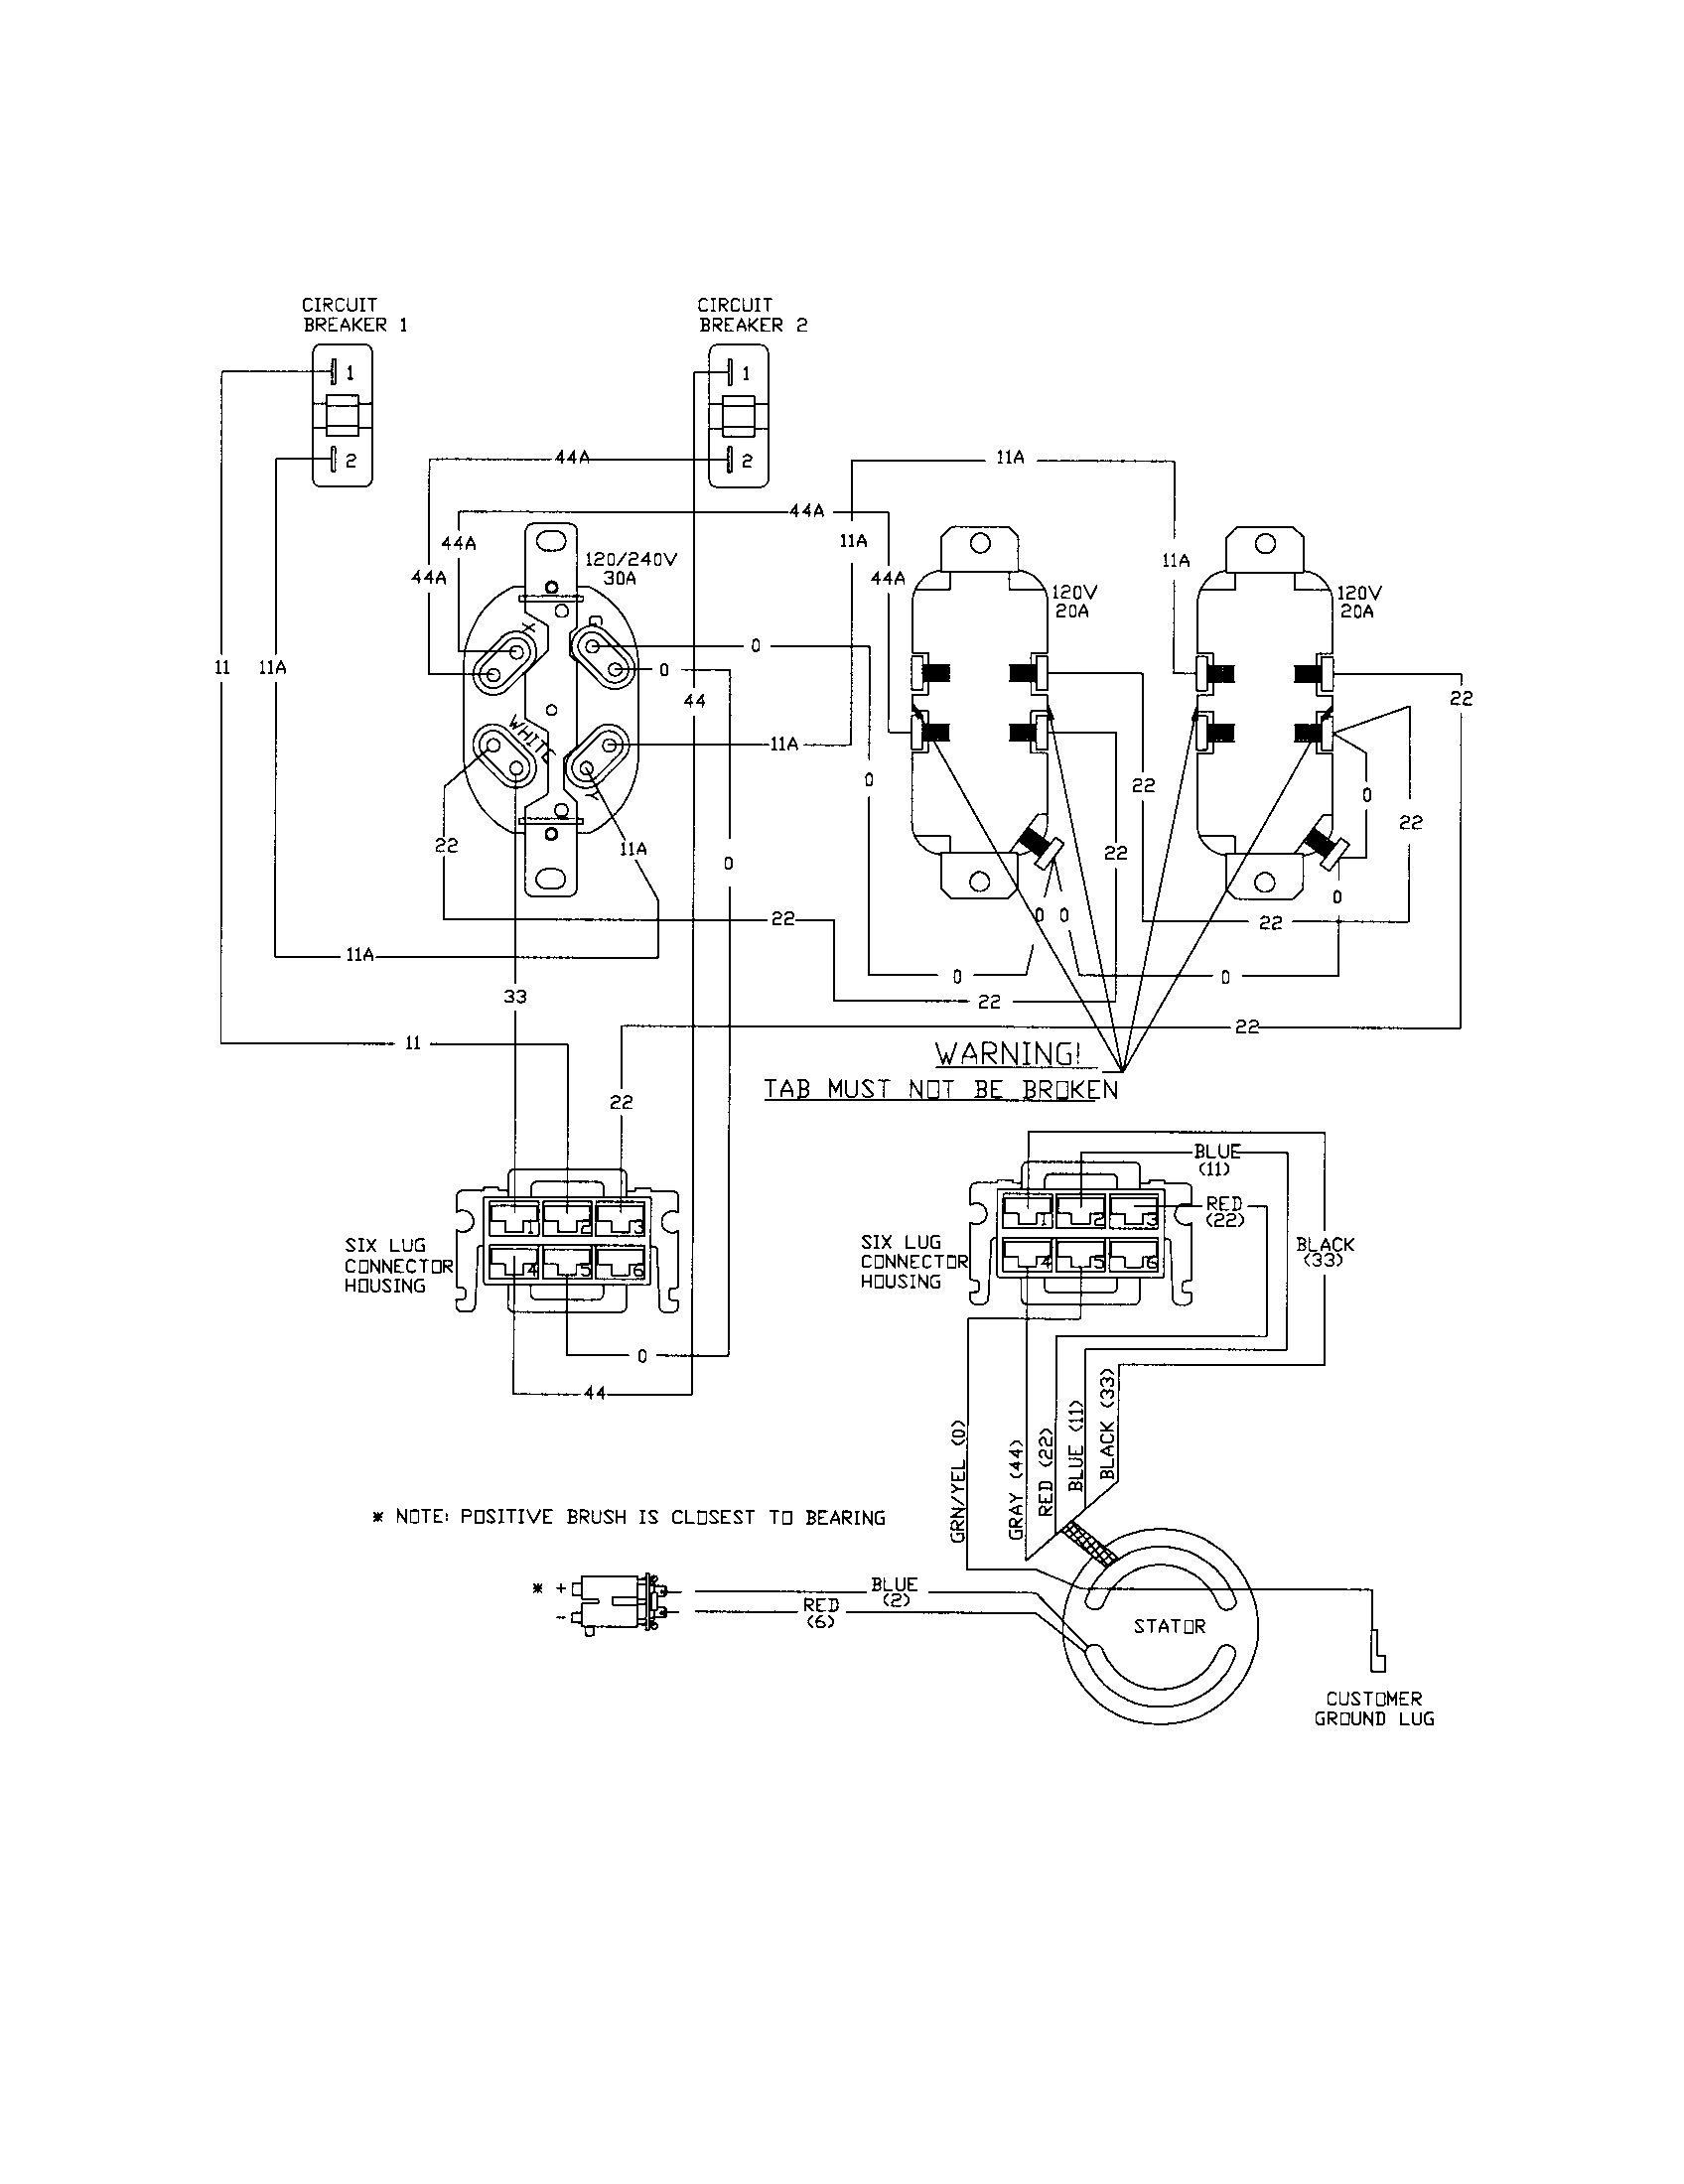 WIRING DIAGRAM Diagram & Parts List for Model 580325600